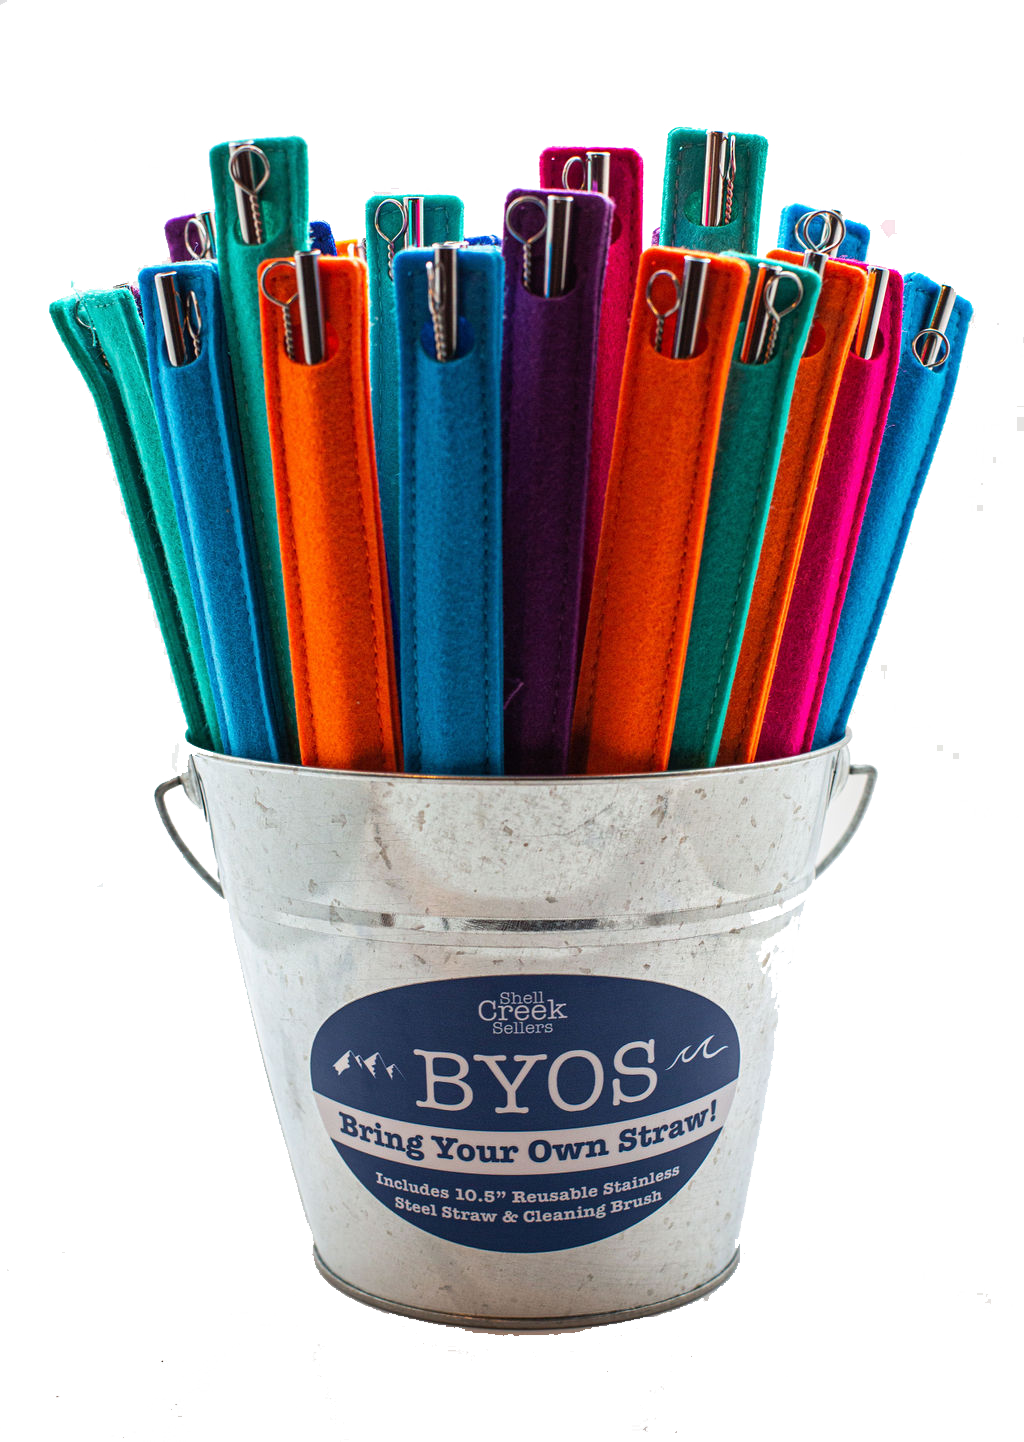 BYOS Bring Your Own Straw Starter Set/Wholesale Only